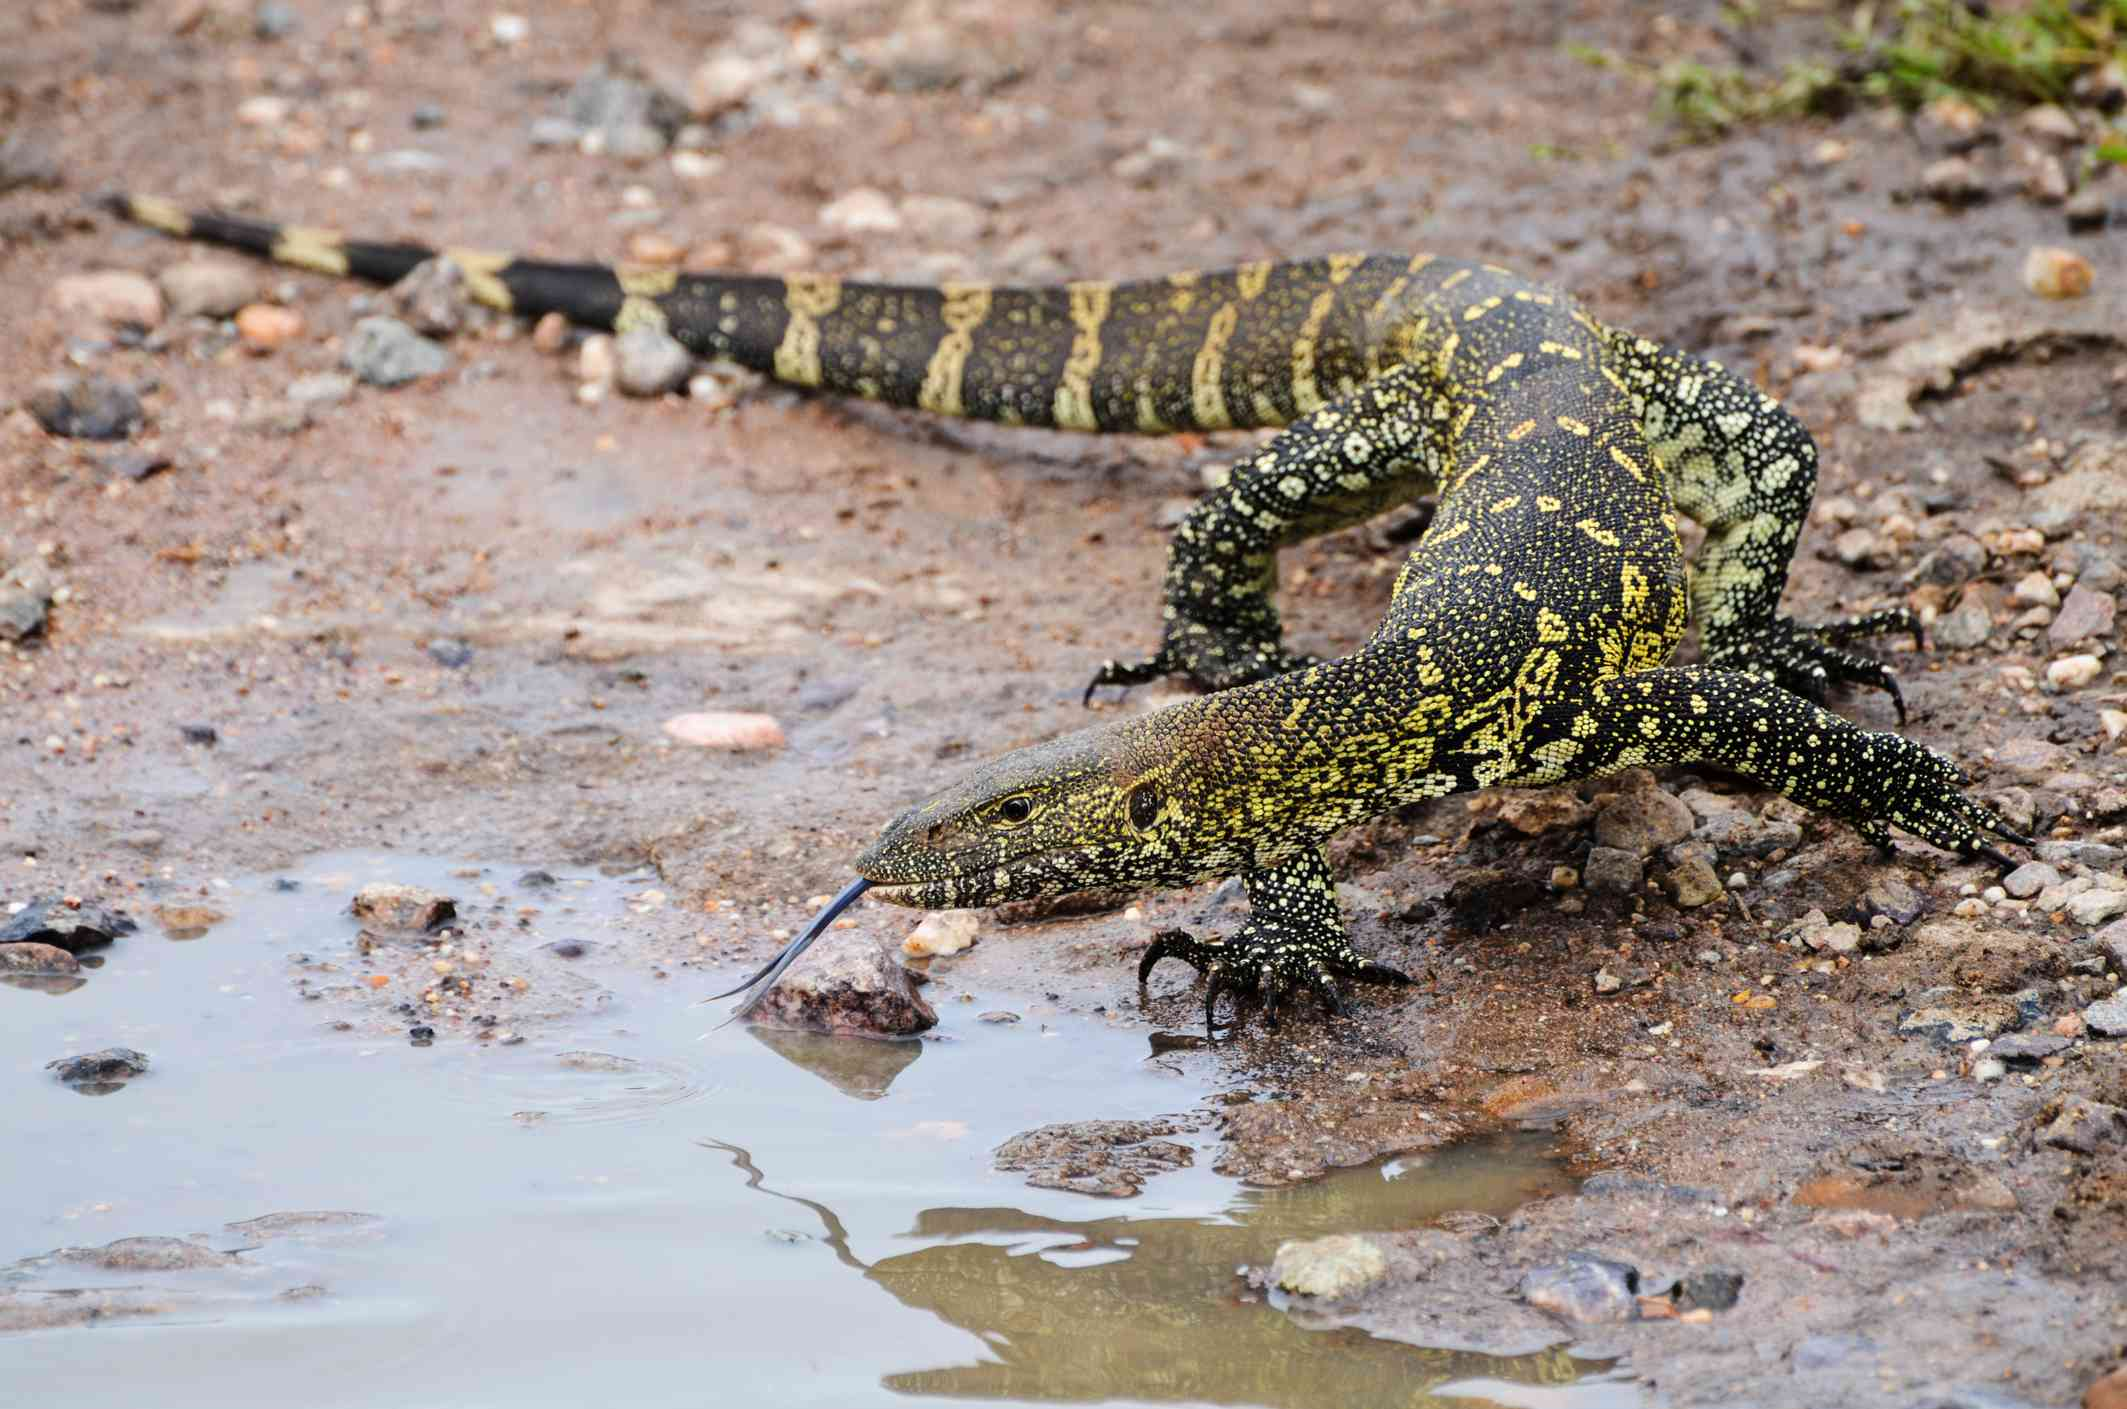 nile monitor lizard shows forked tongue near puddle